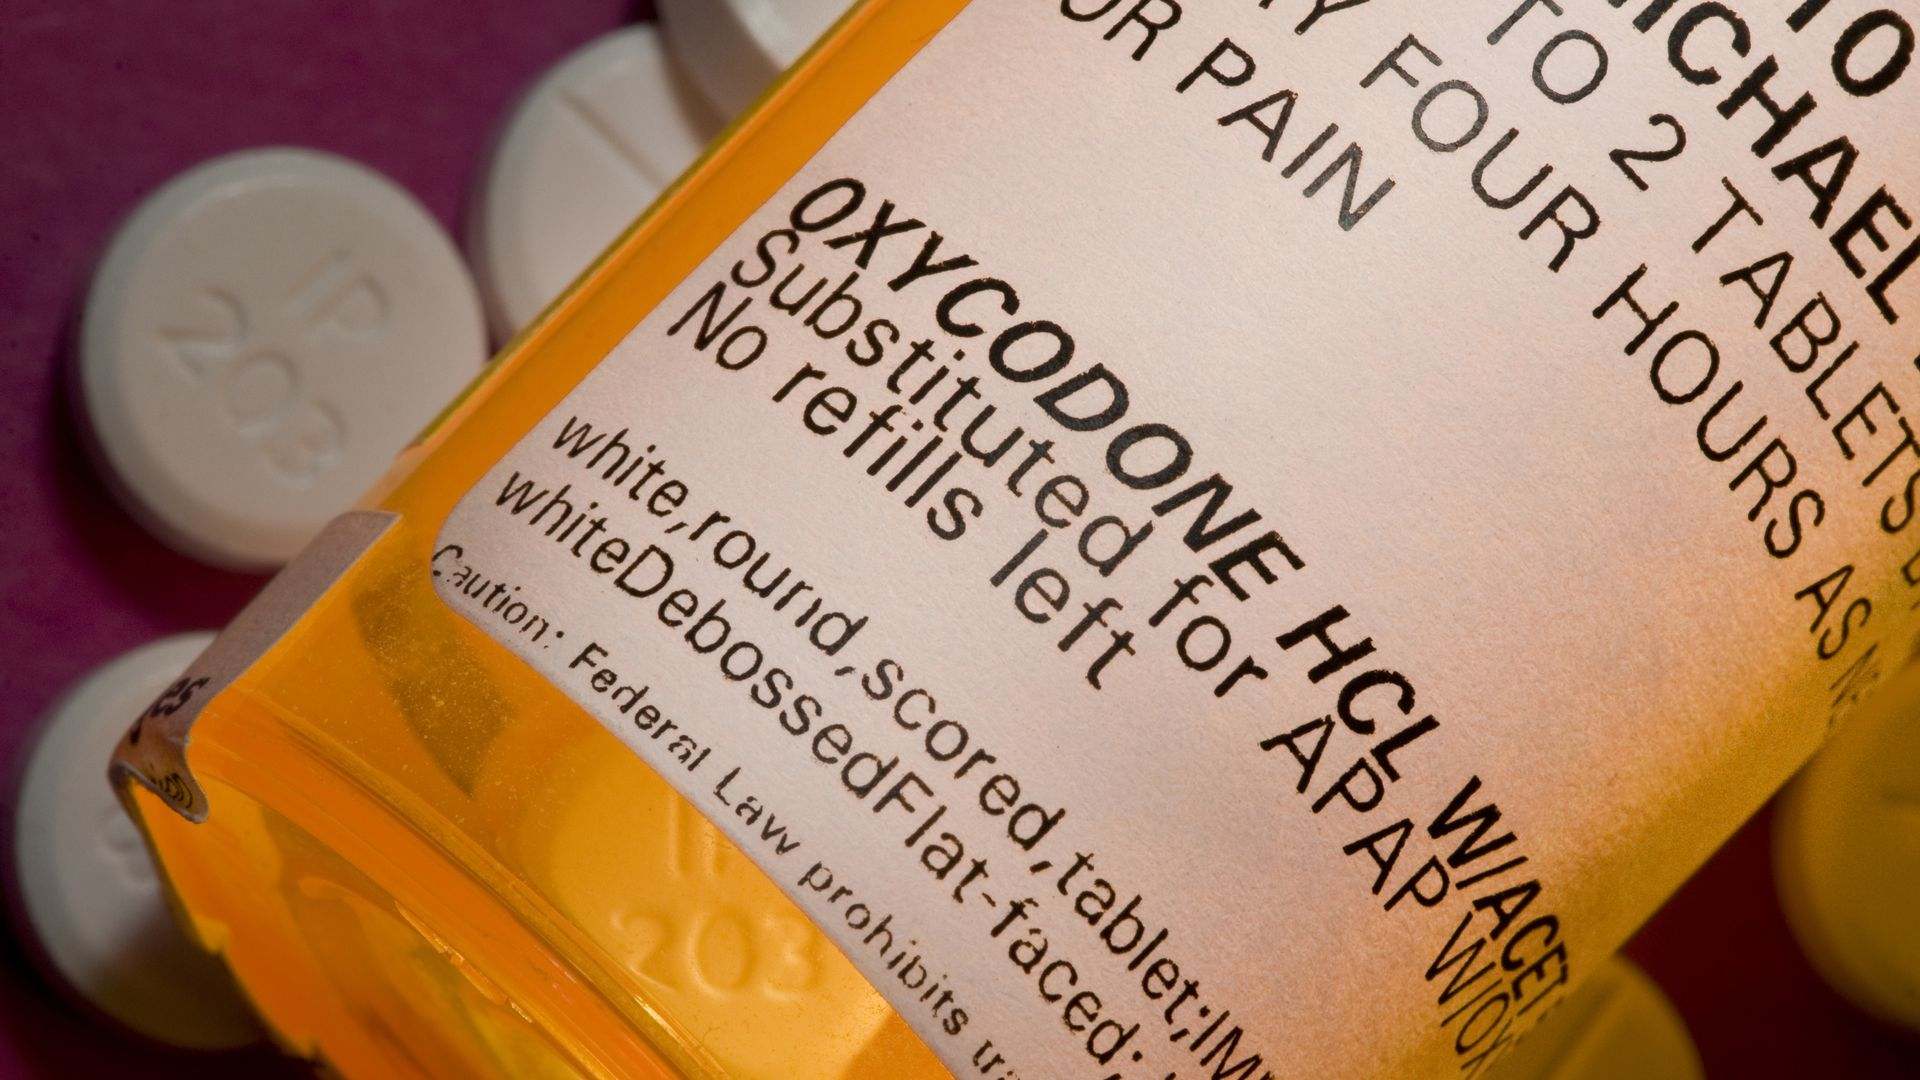 A prescription bottle for Oxycodone